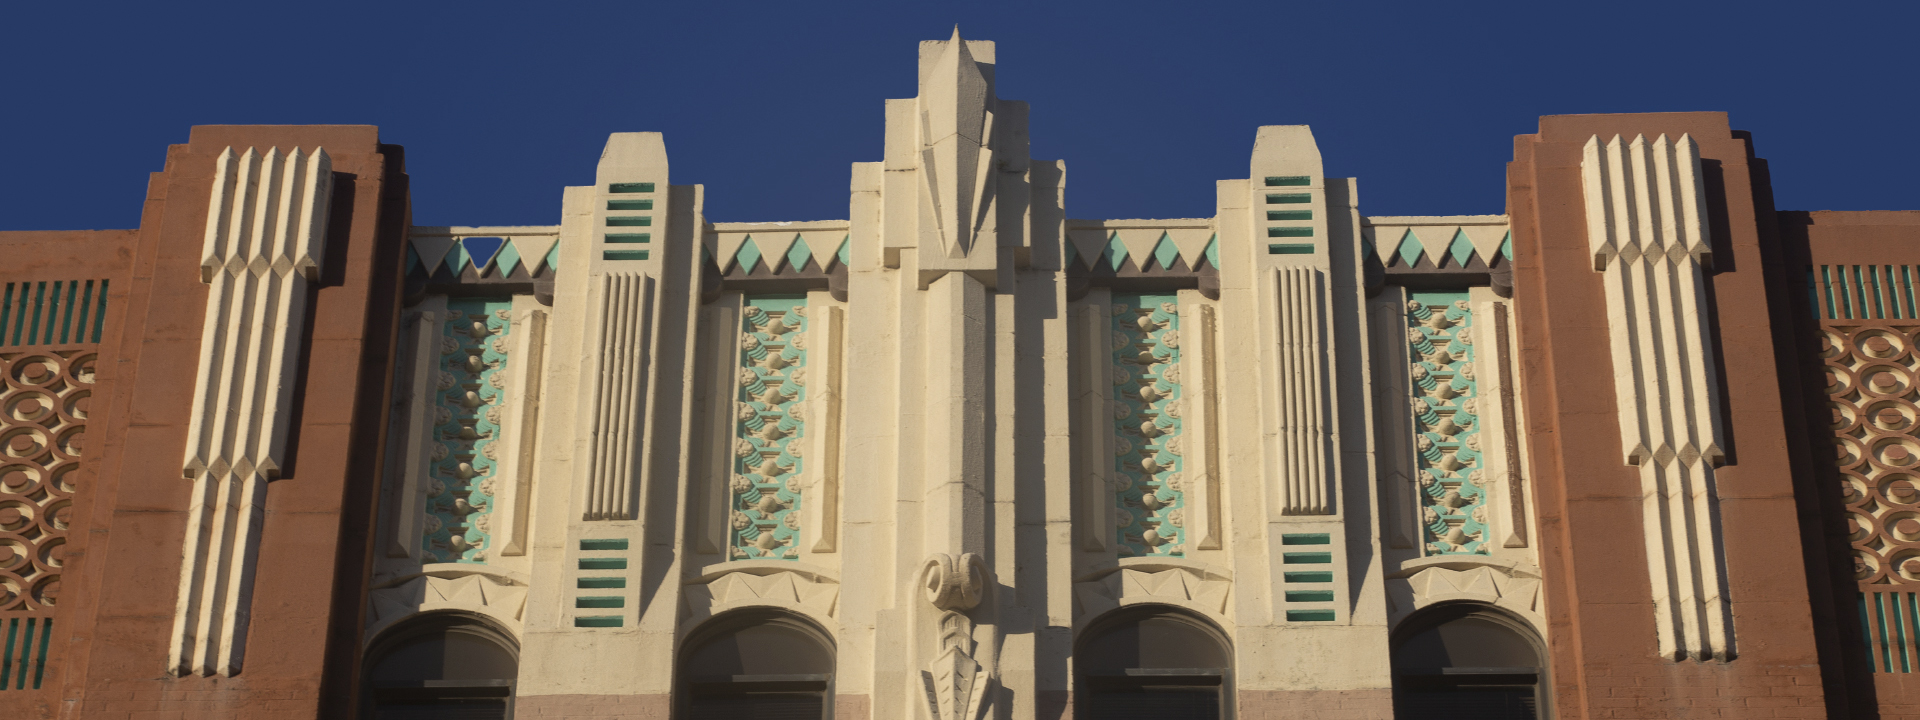 the top of the UHD main building featuring art deco elements